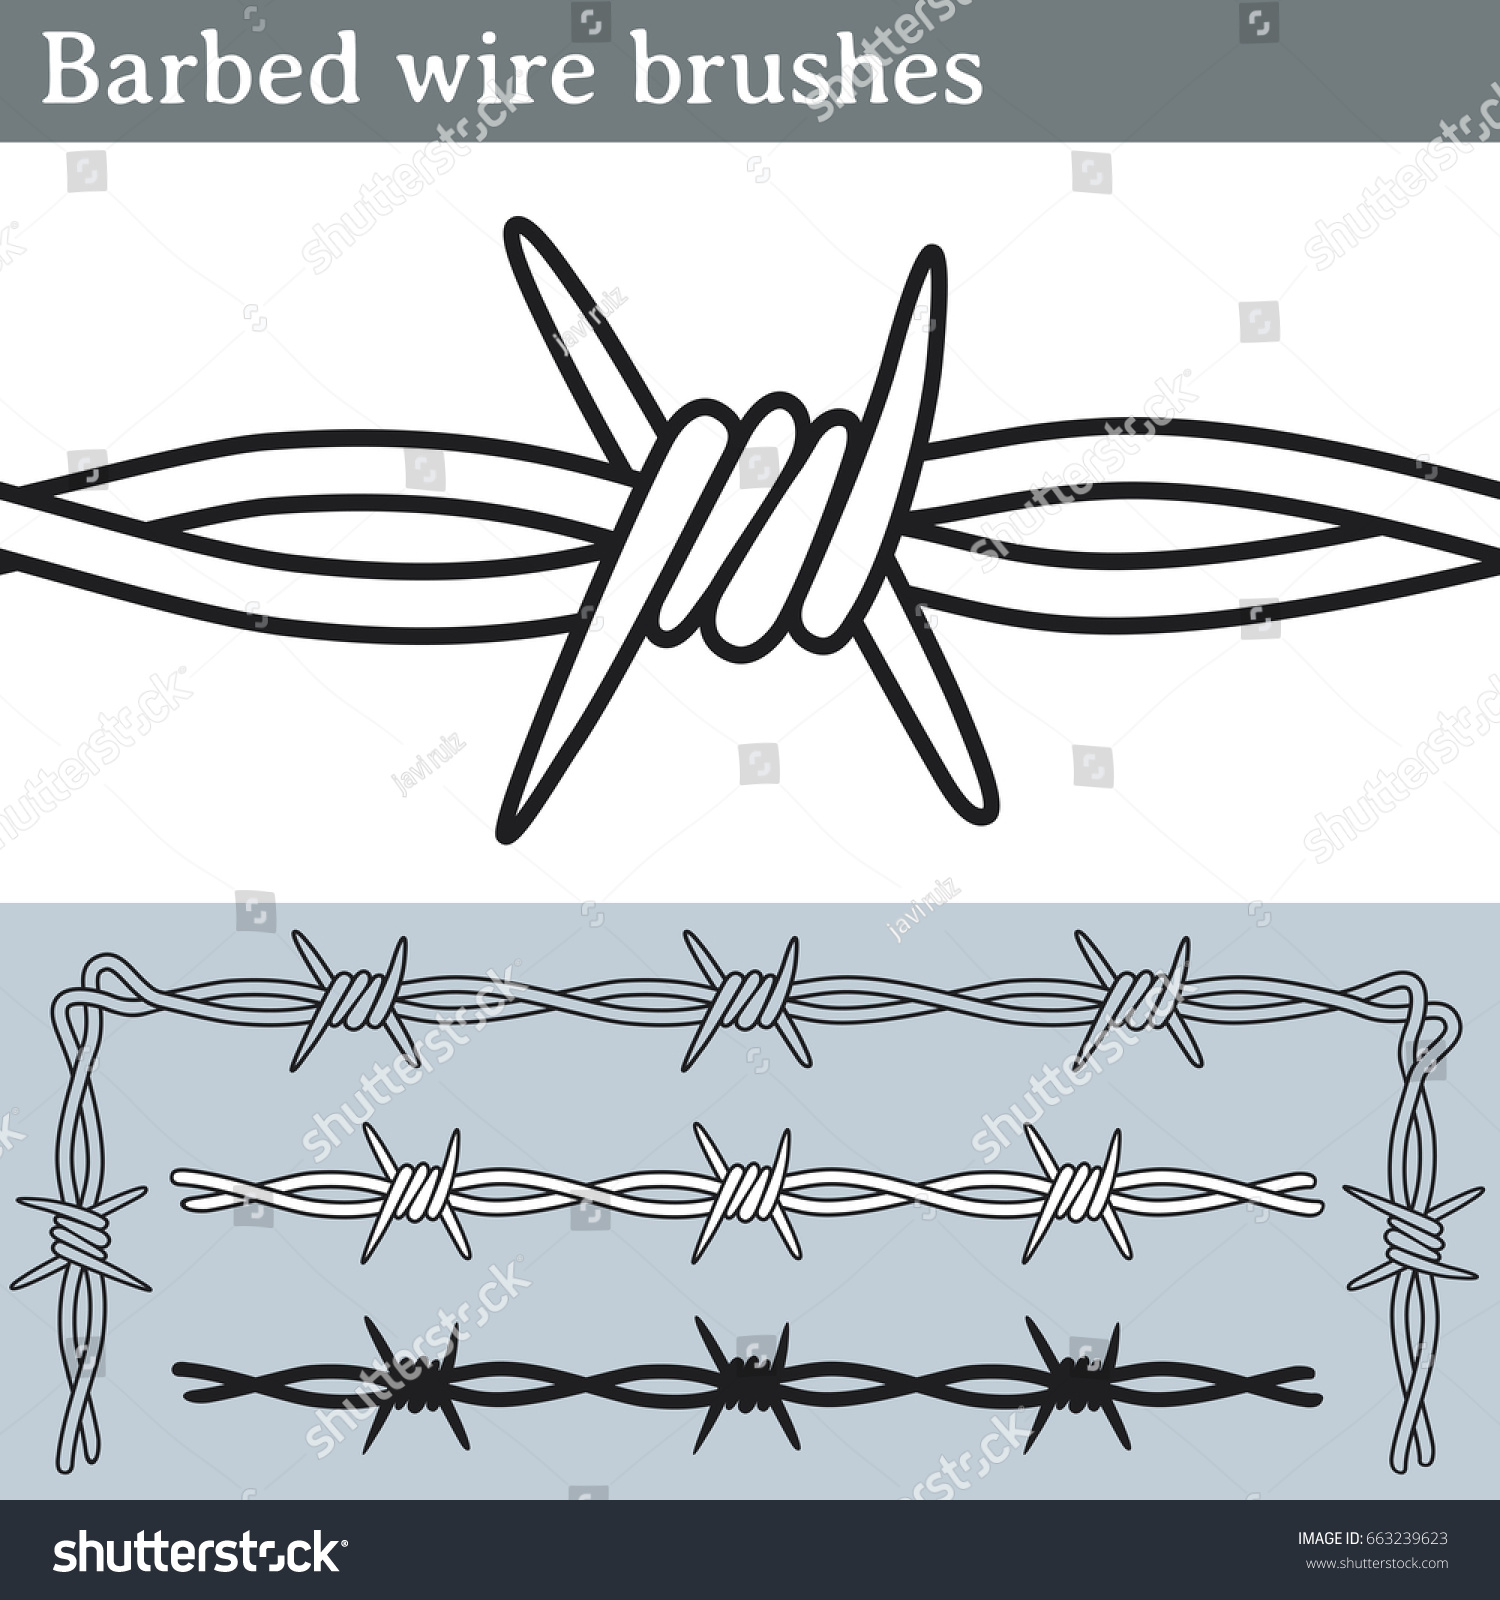 Barbed Wire Brushes Brushes Illustrator Draw Stock Vector 663239623 ...